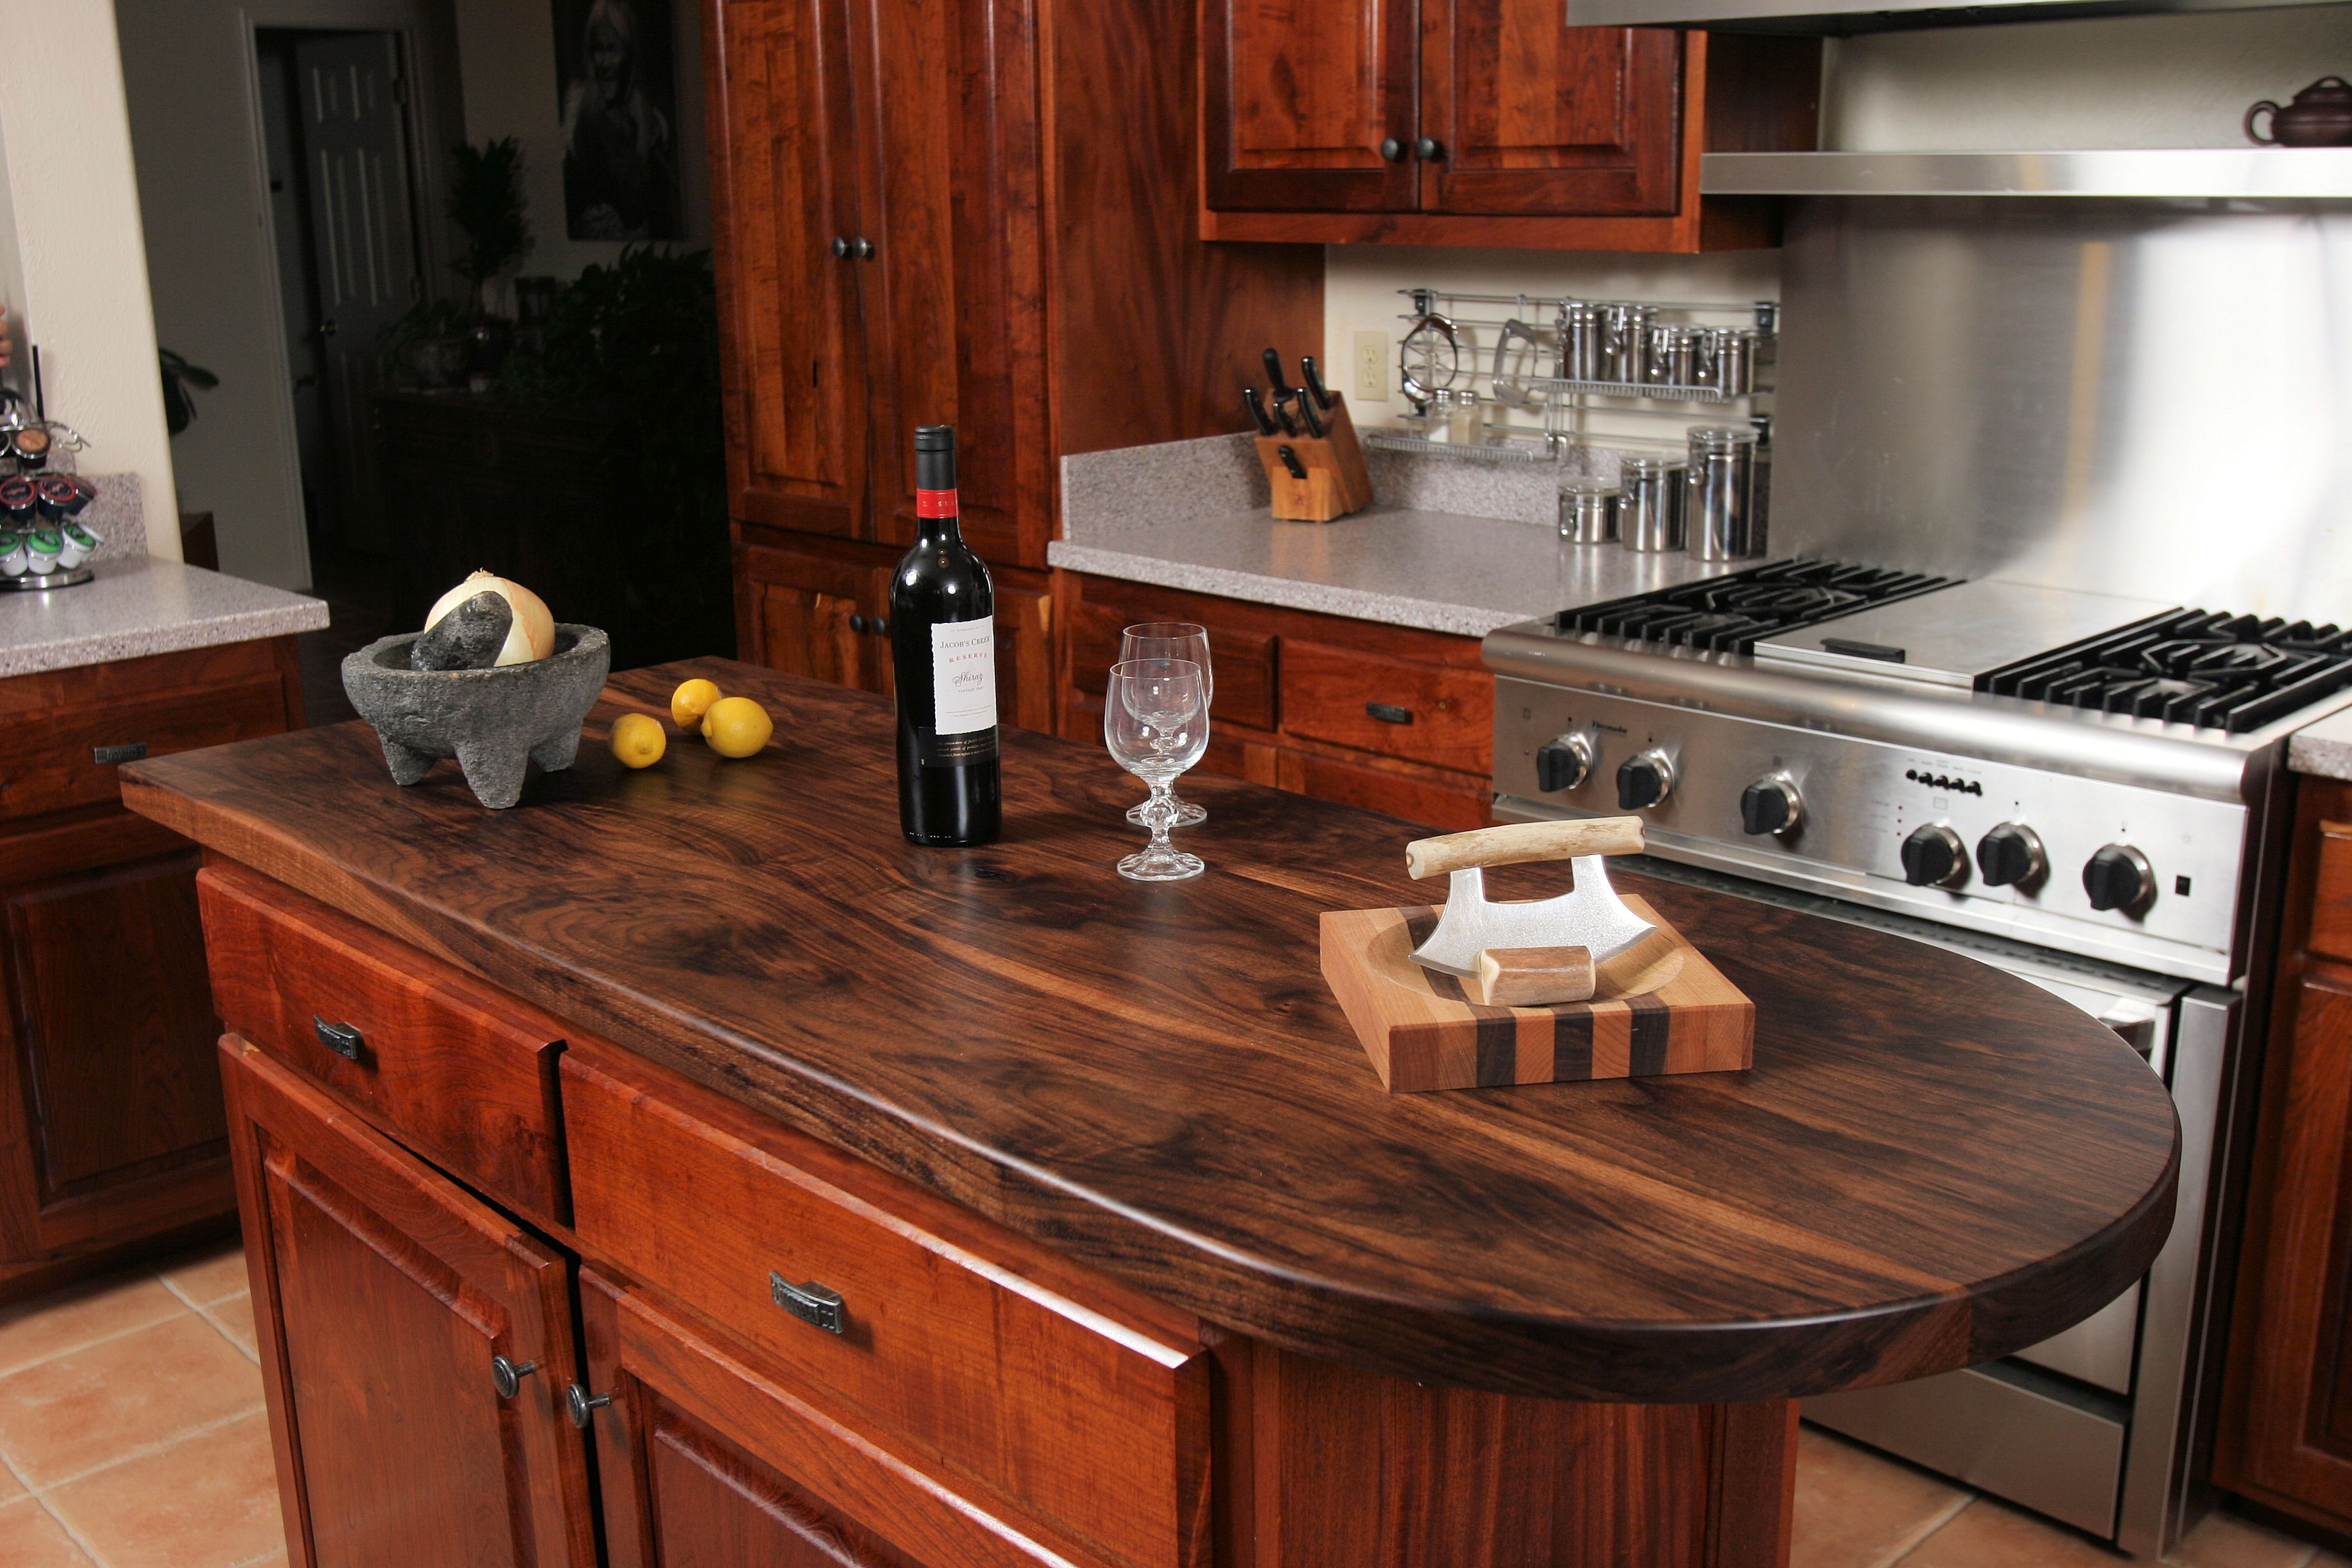 Rustic Wood Kitchen Countertops Wood Kitchen Countertopsi Like This Butcher Block Counter Would